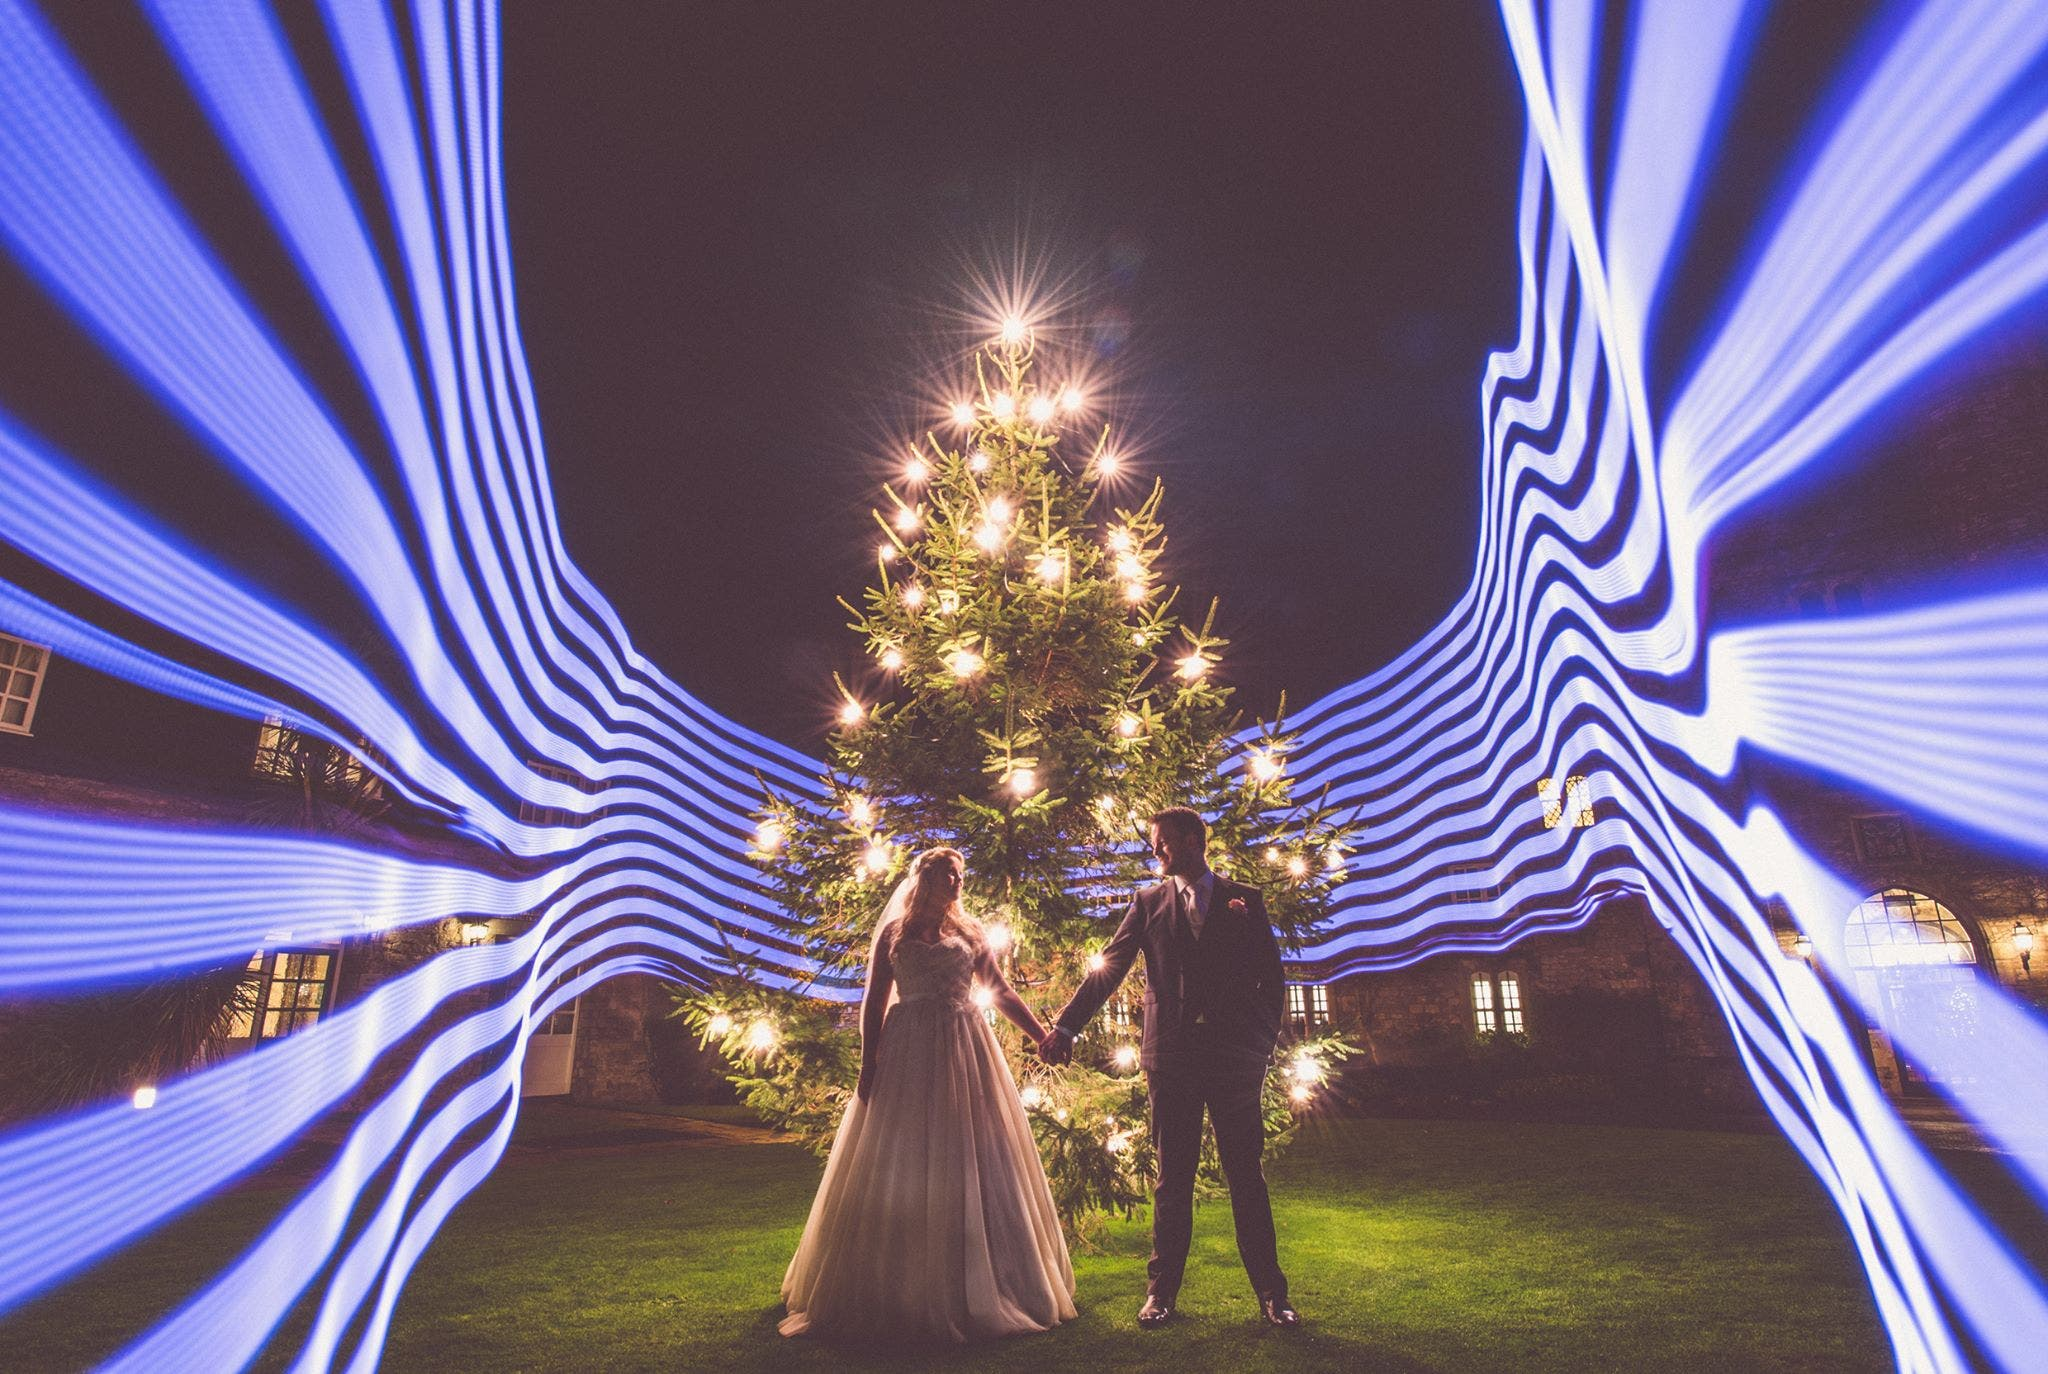 Light Painting Wedding Photography: Wedding Portrait By Nick Murray Uses Creative Light Painting